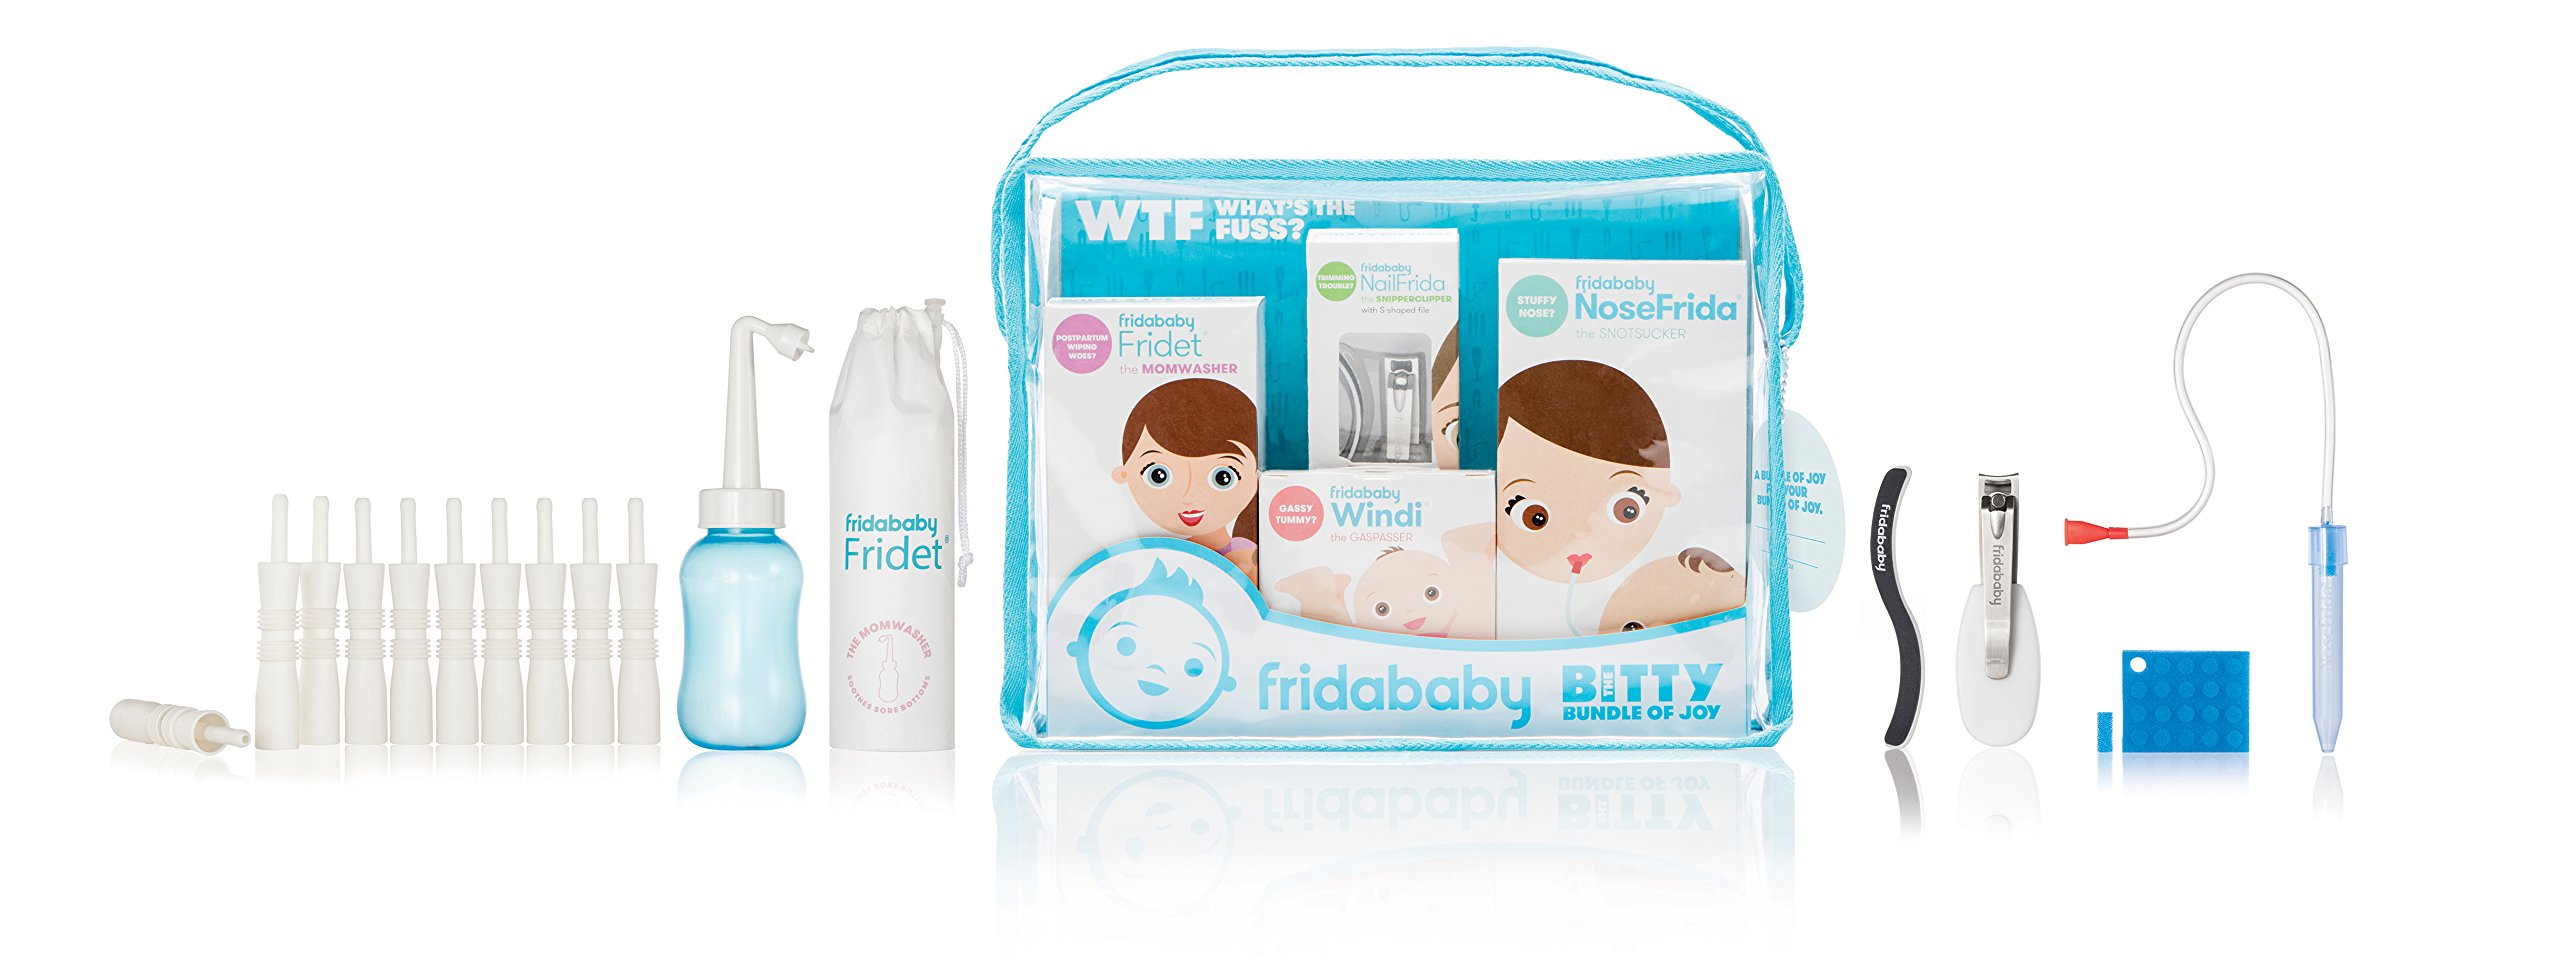 Fridababy Bitty Bundle of Joy Mom & Baby Healthcare and Grooming Gift Kit by FridaBaby (Image #2)